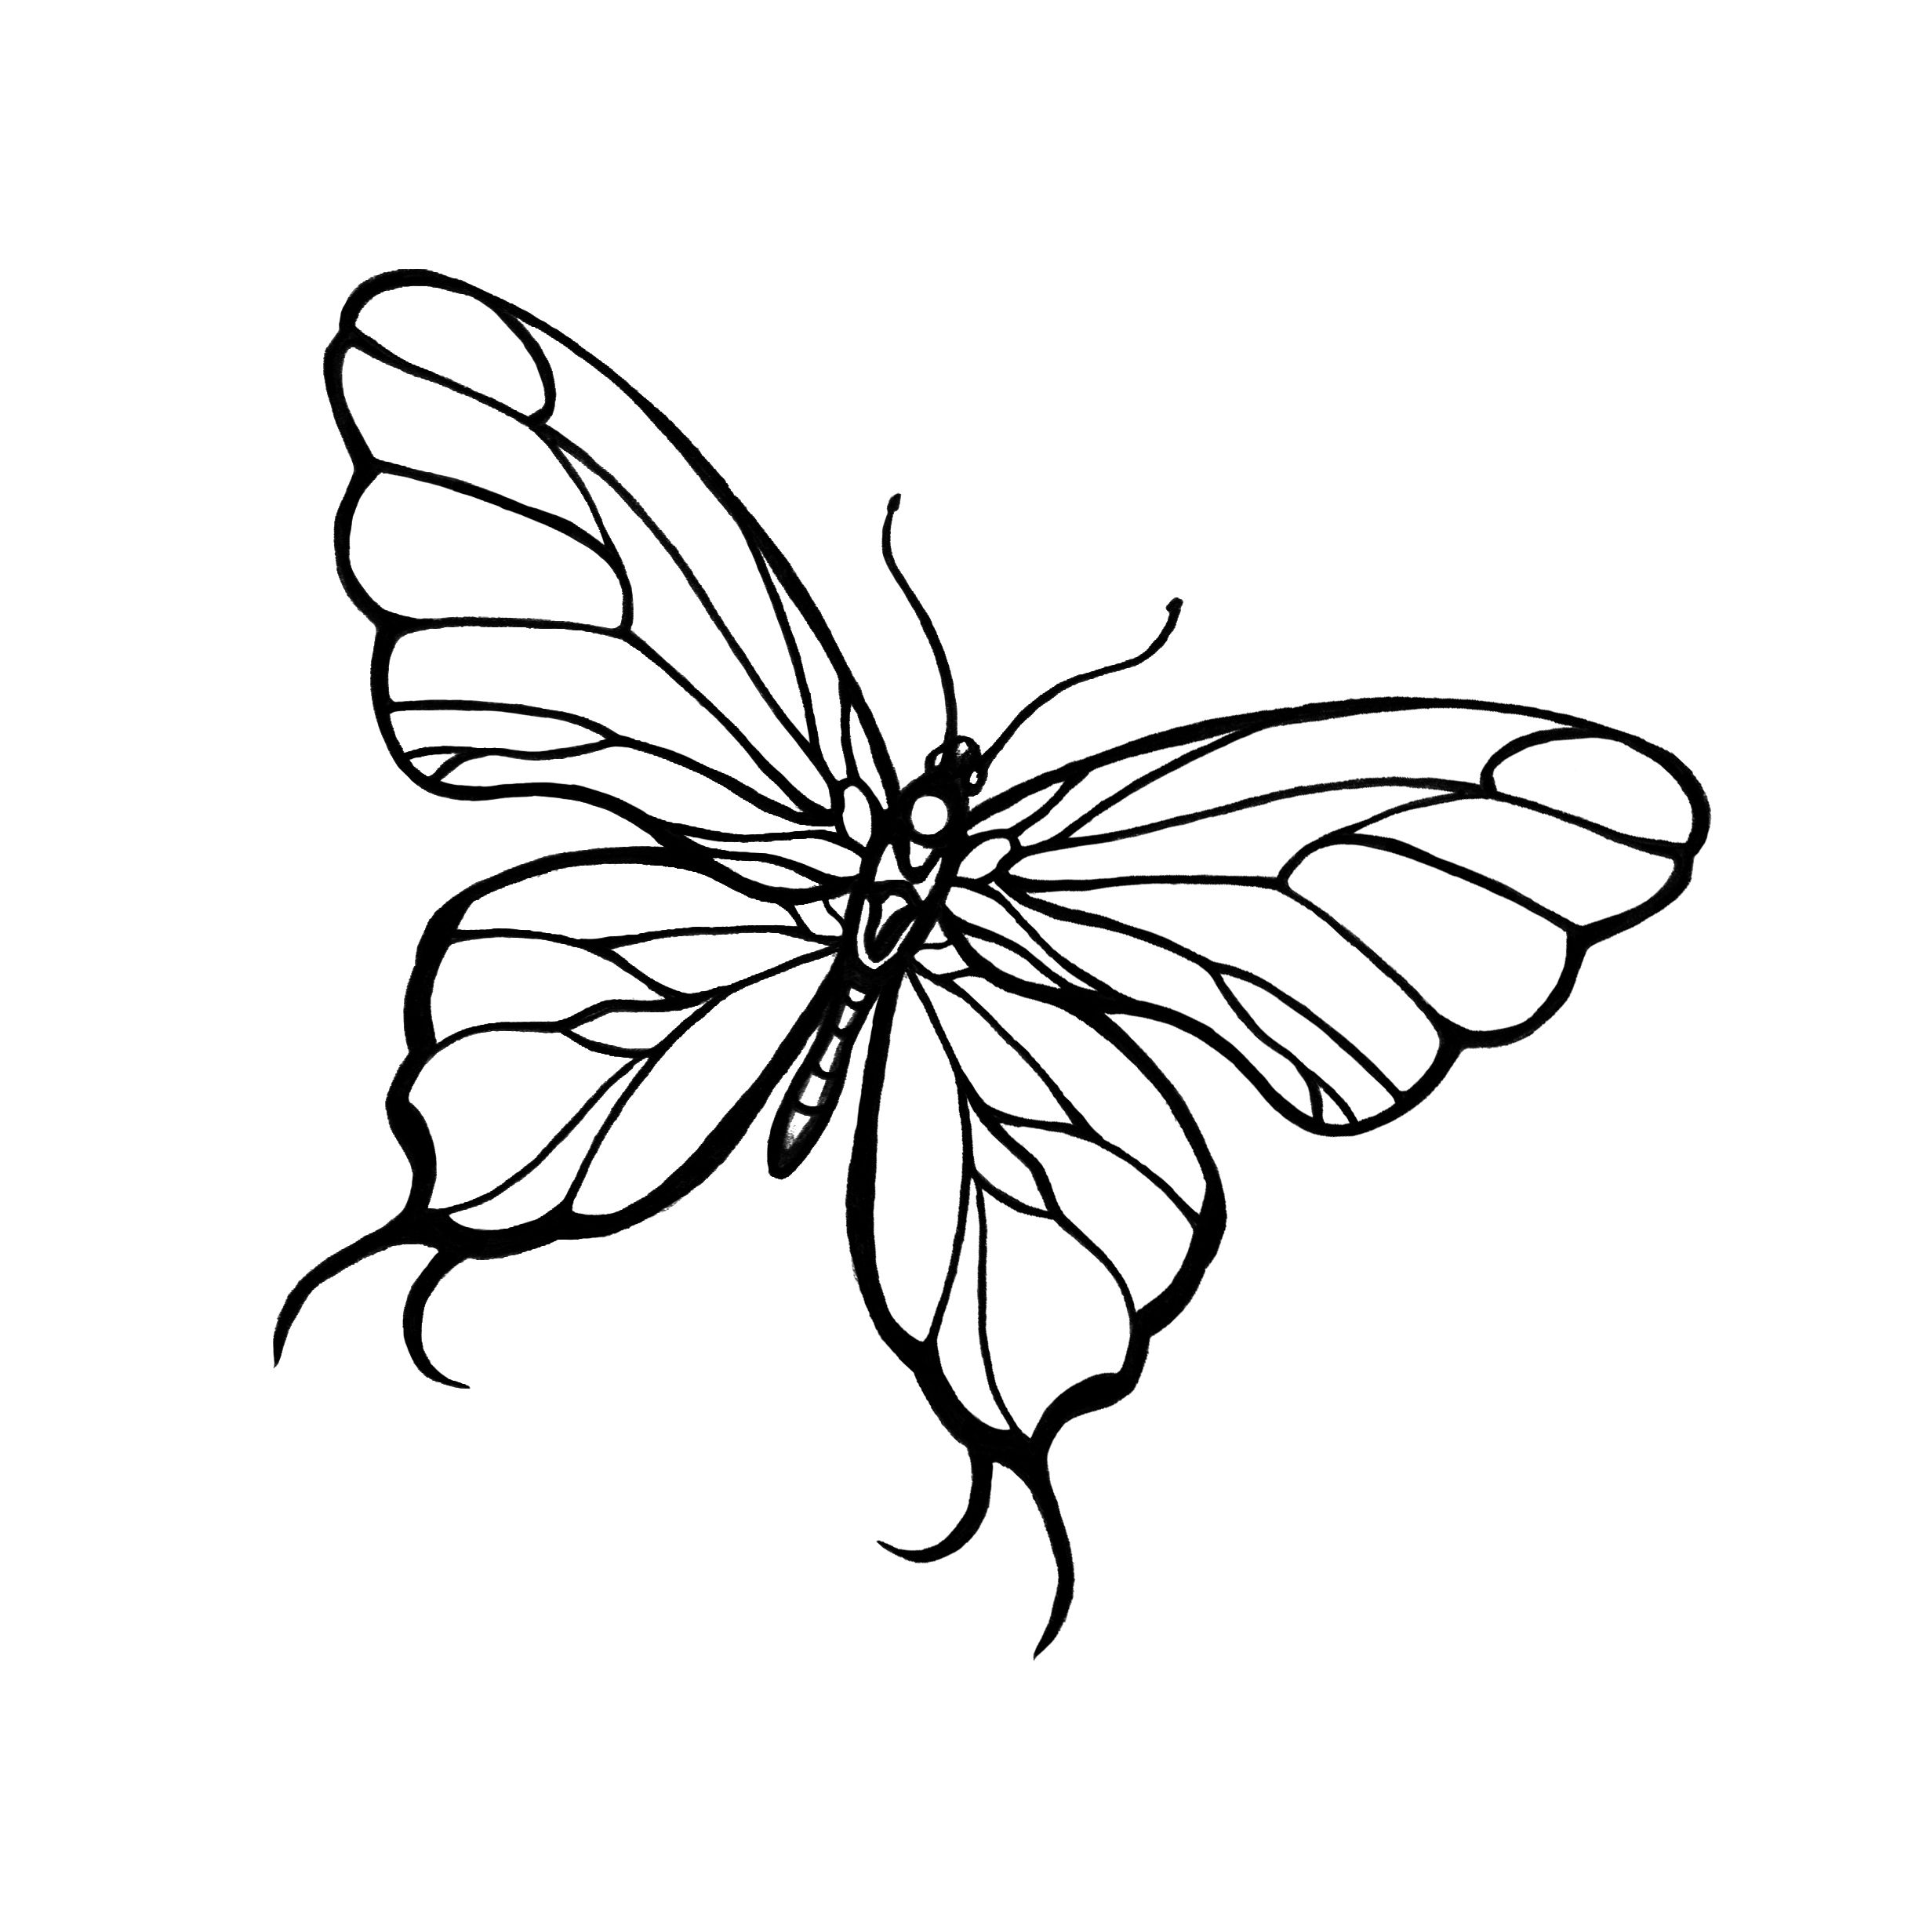 Simple Butterfly Drawing: Little Gift From TattooMeNow